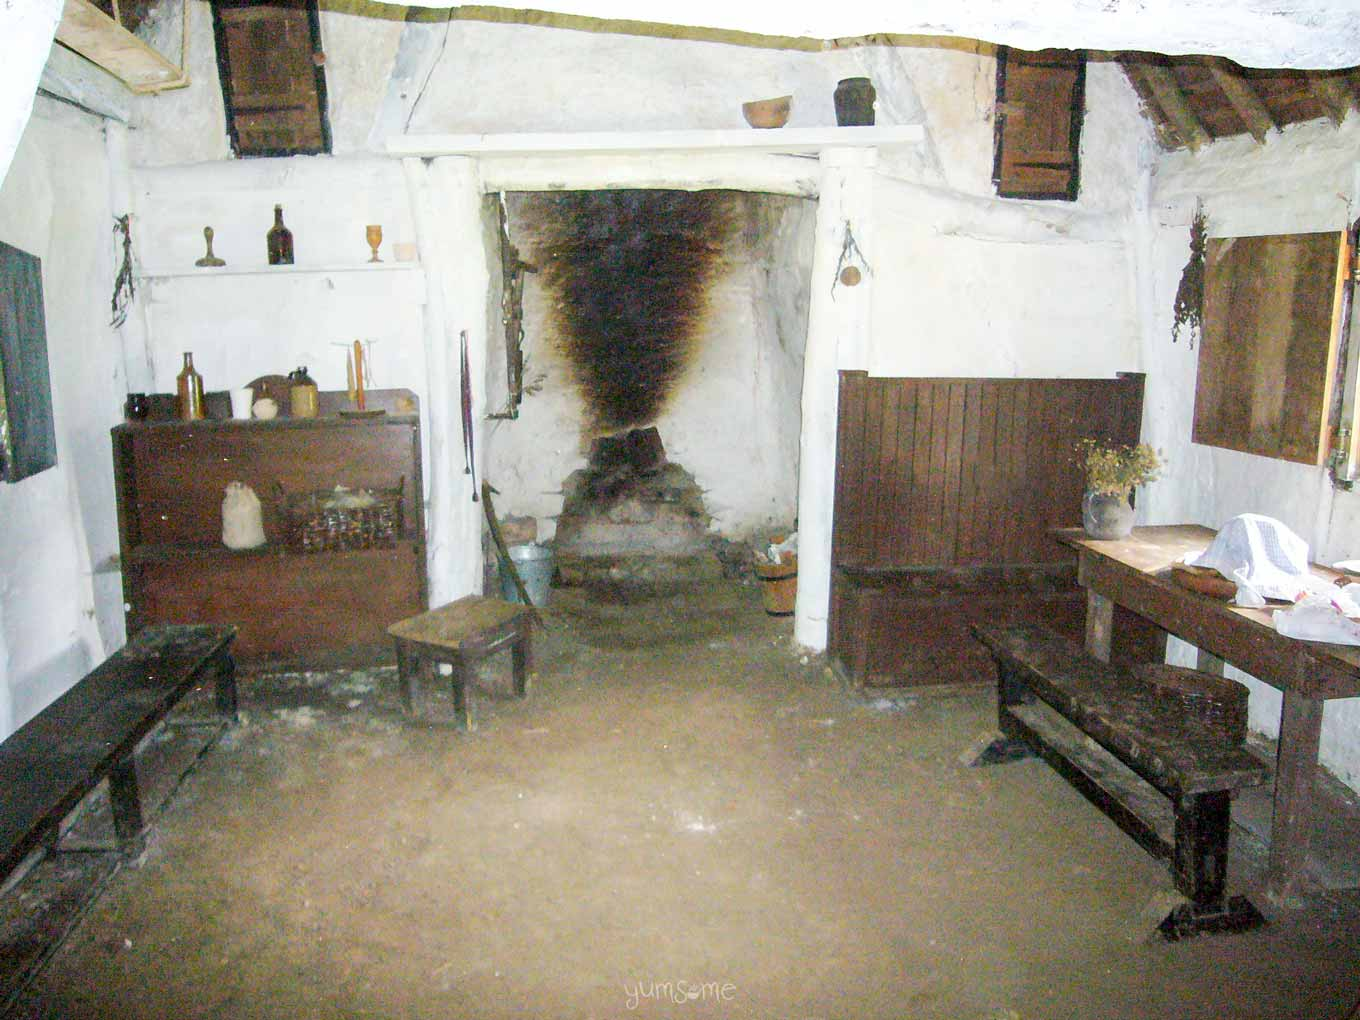 Holdenby 17th century cruck house interior | yumsome.com